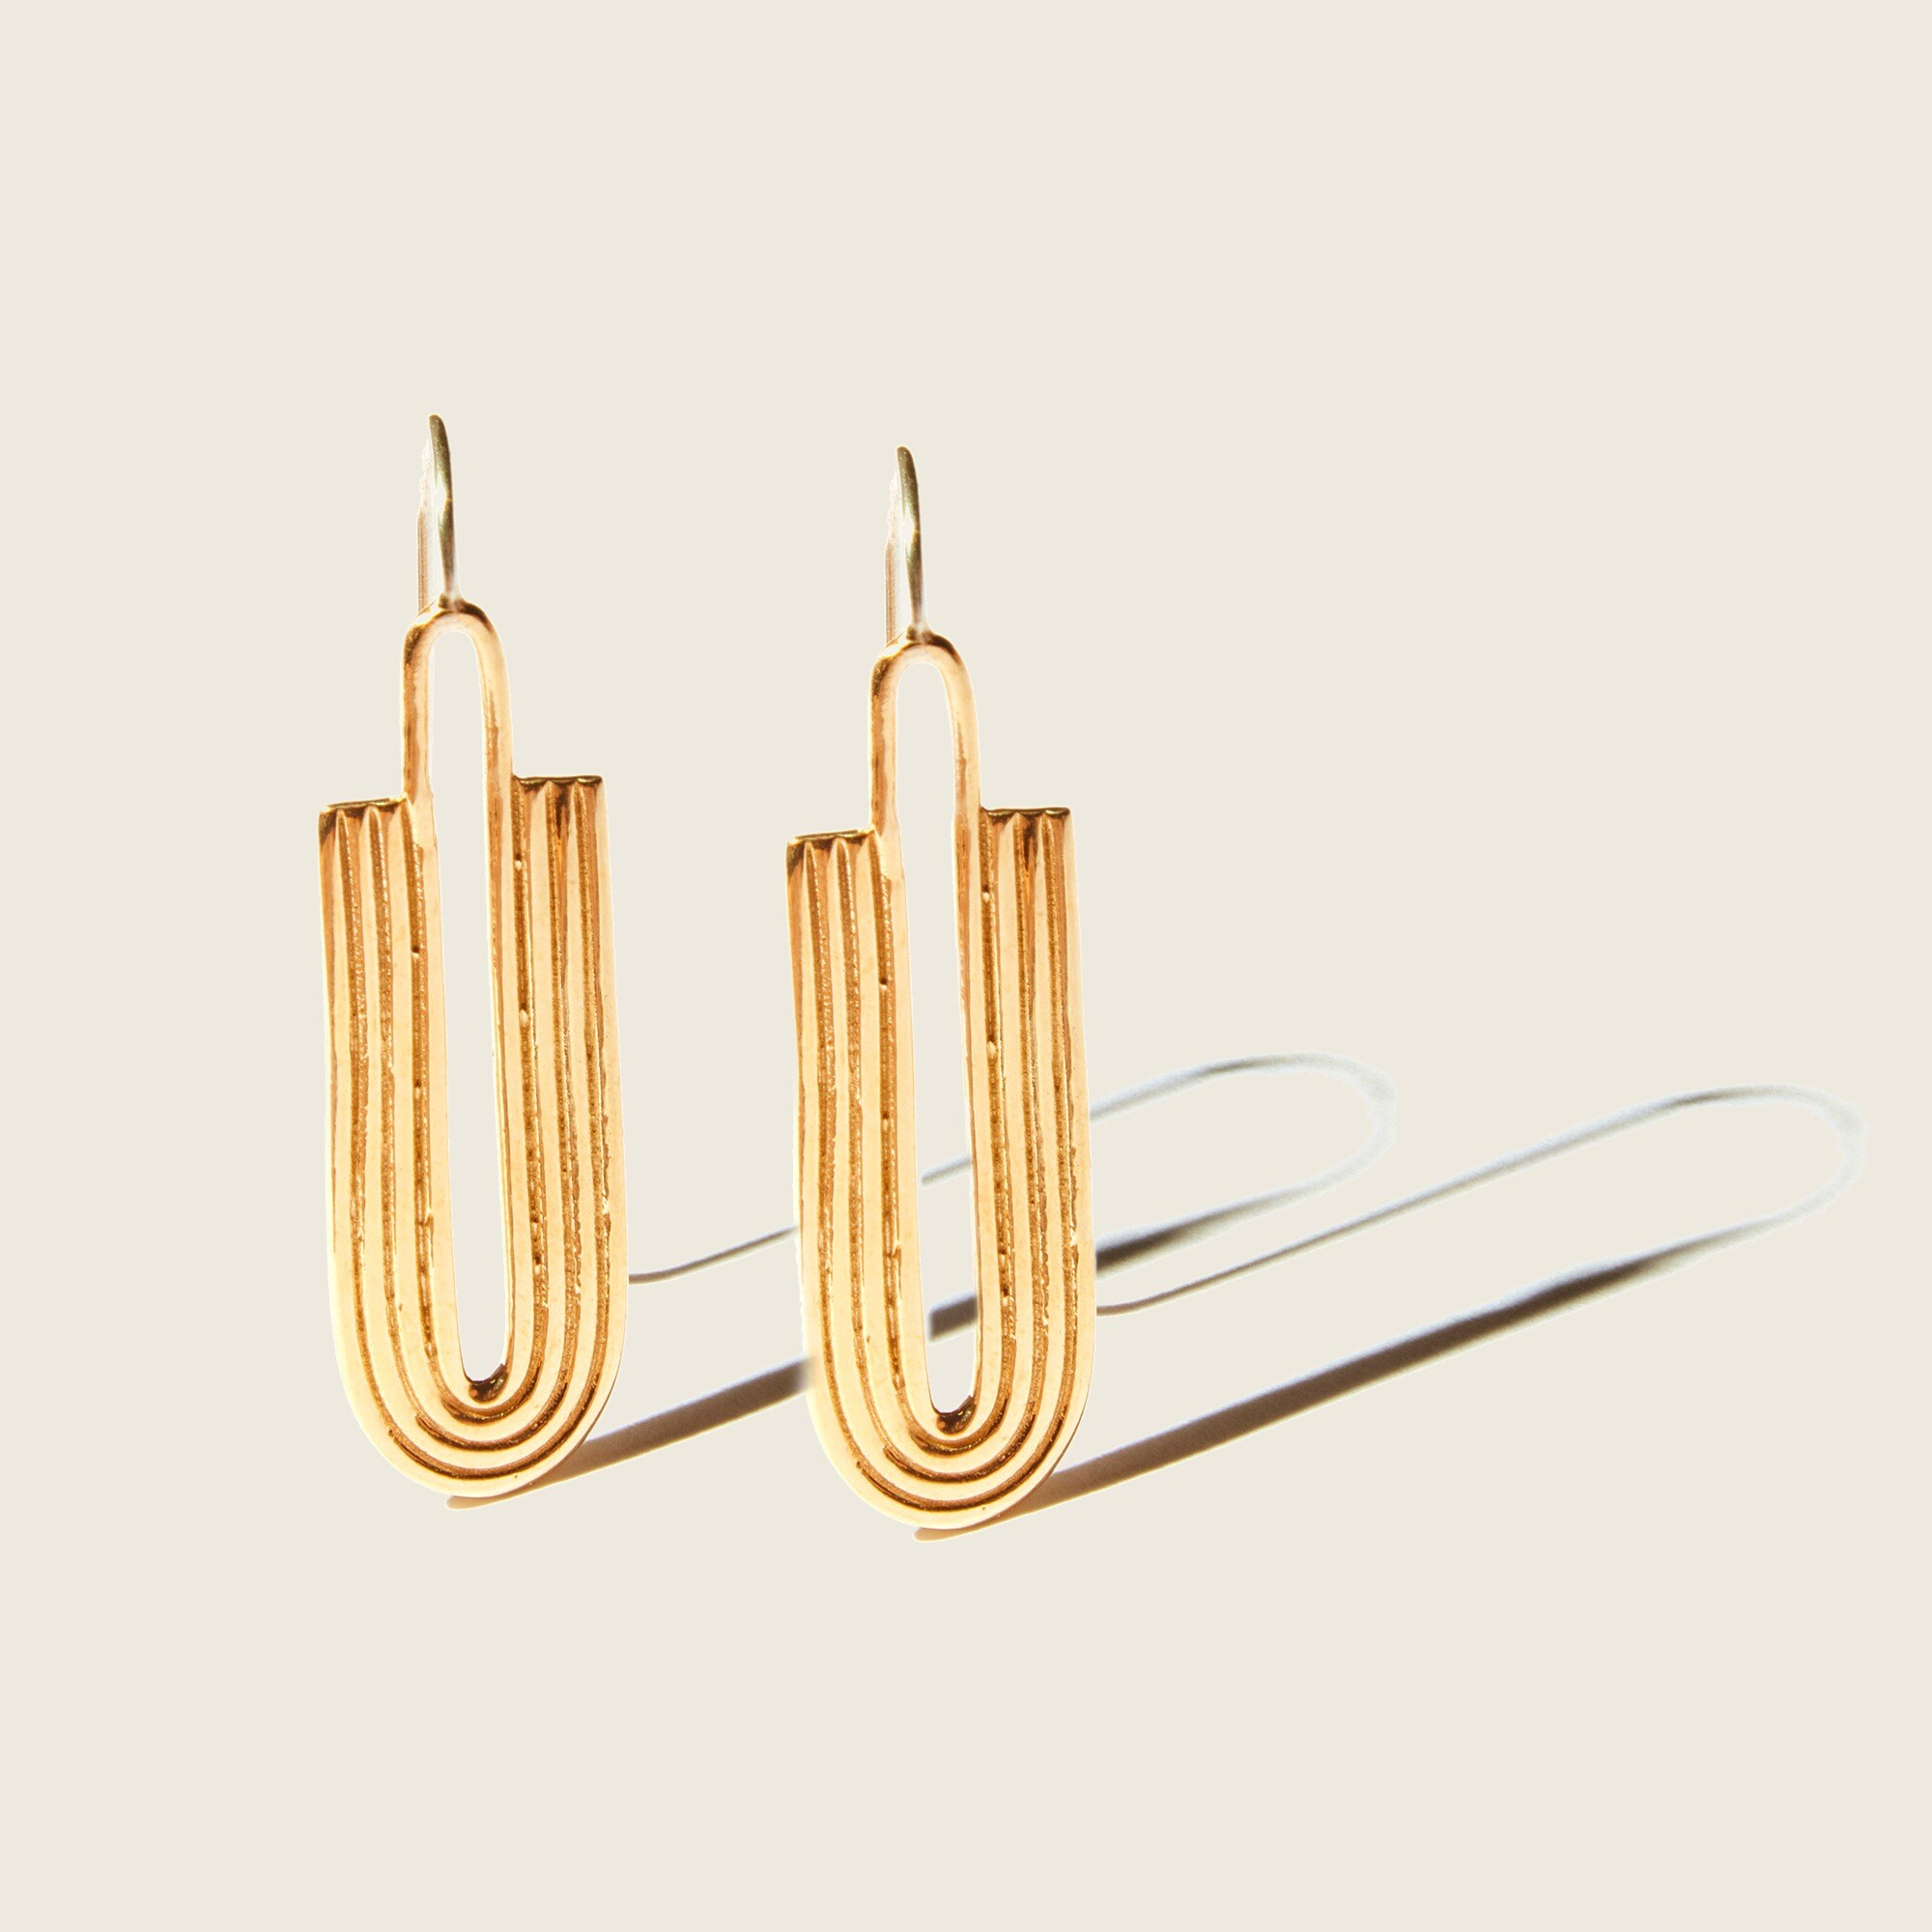 Odette New York® Kaj earrings women j.crew in good company c